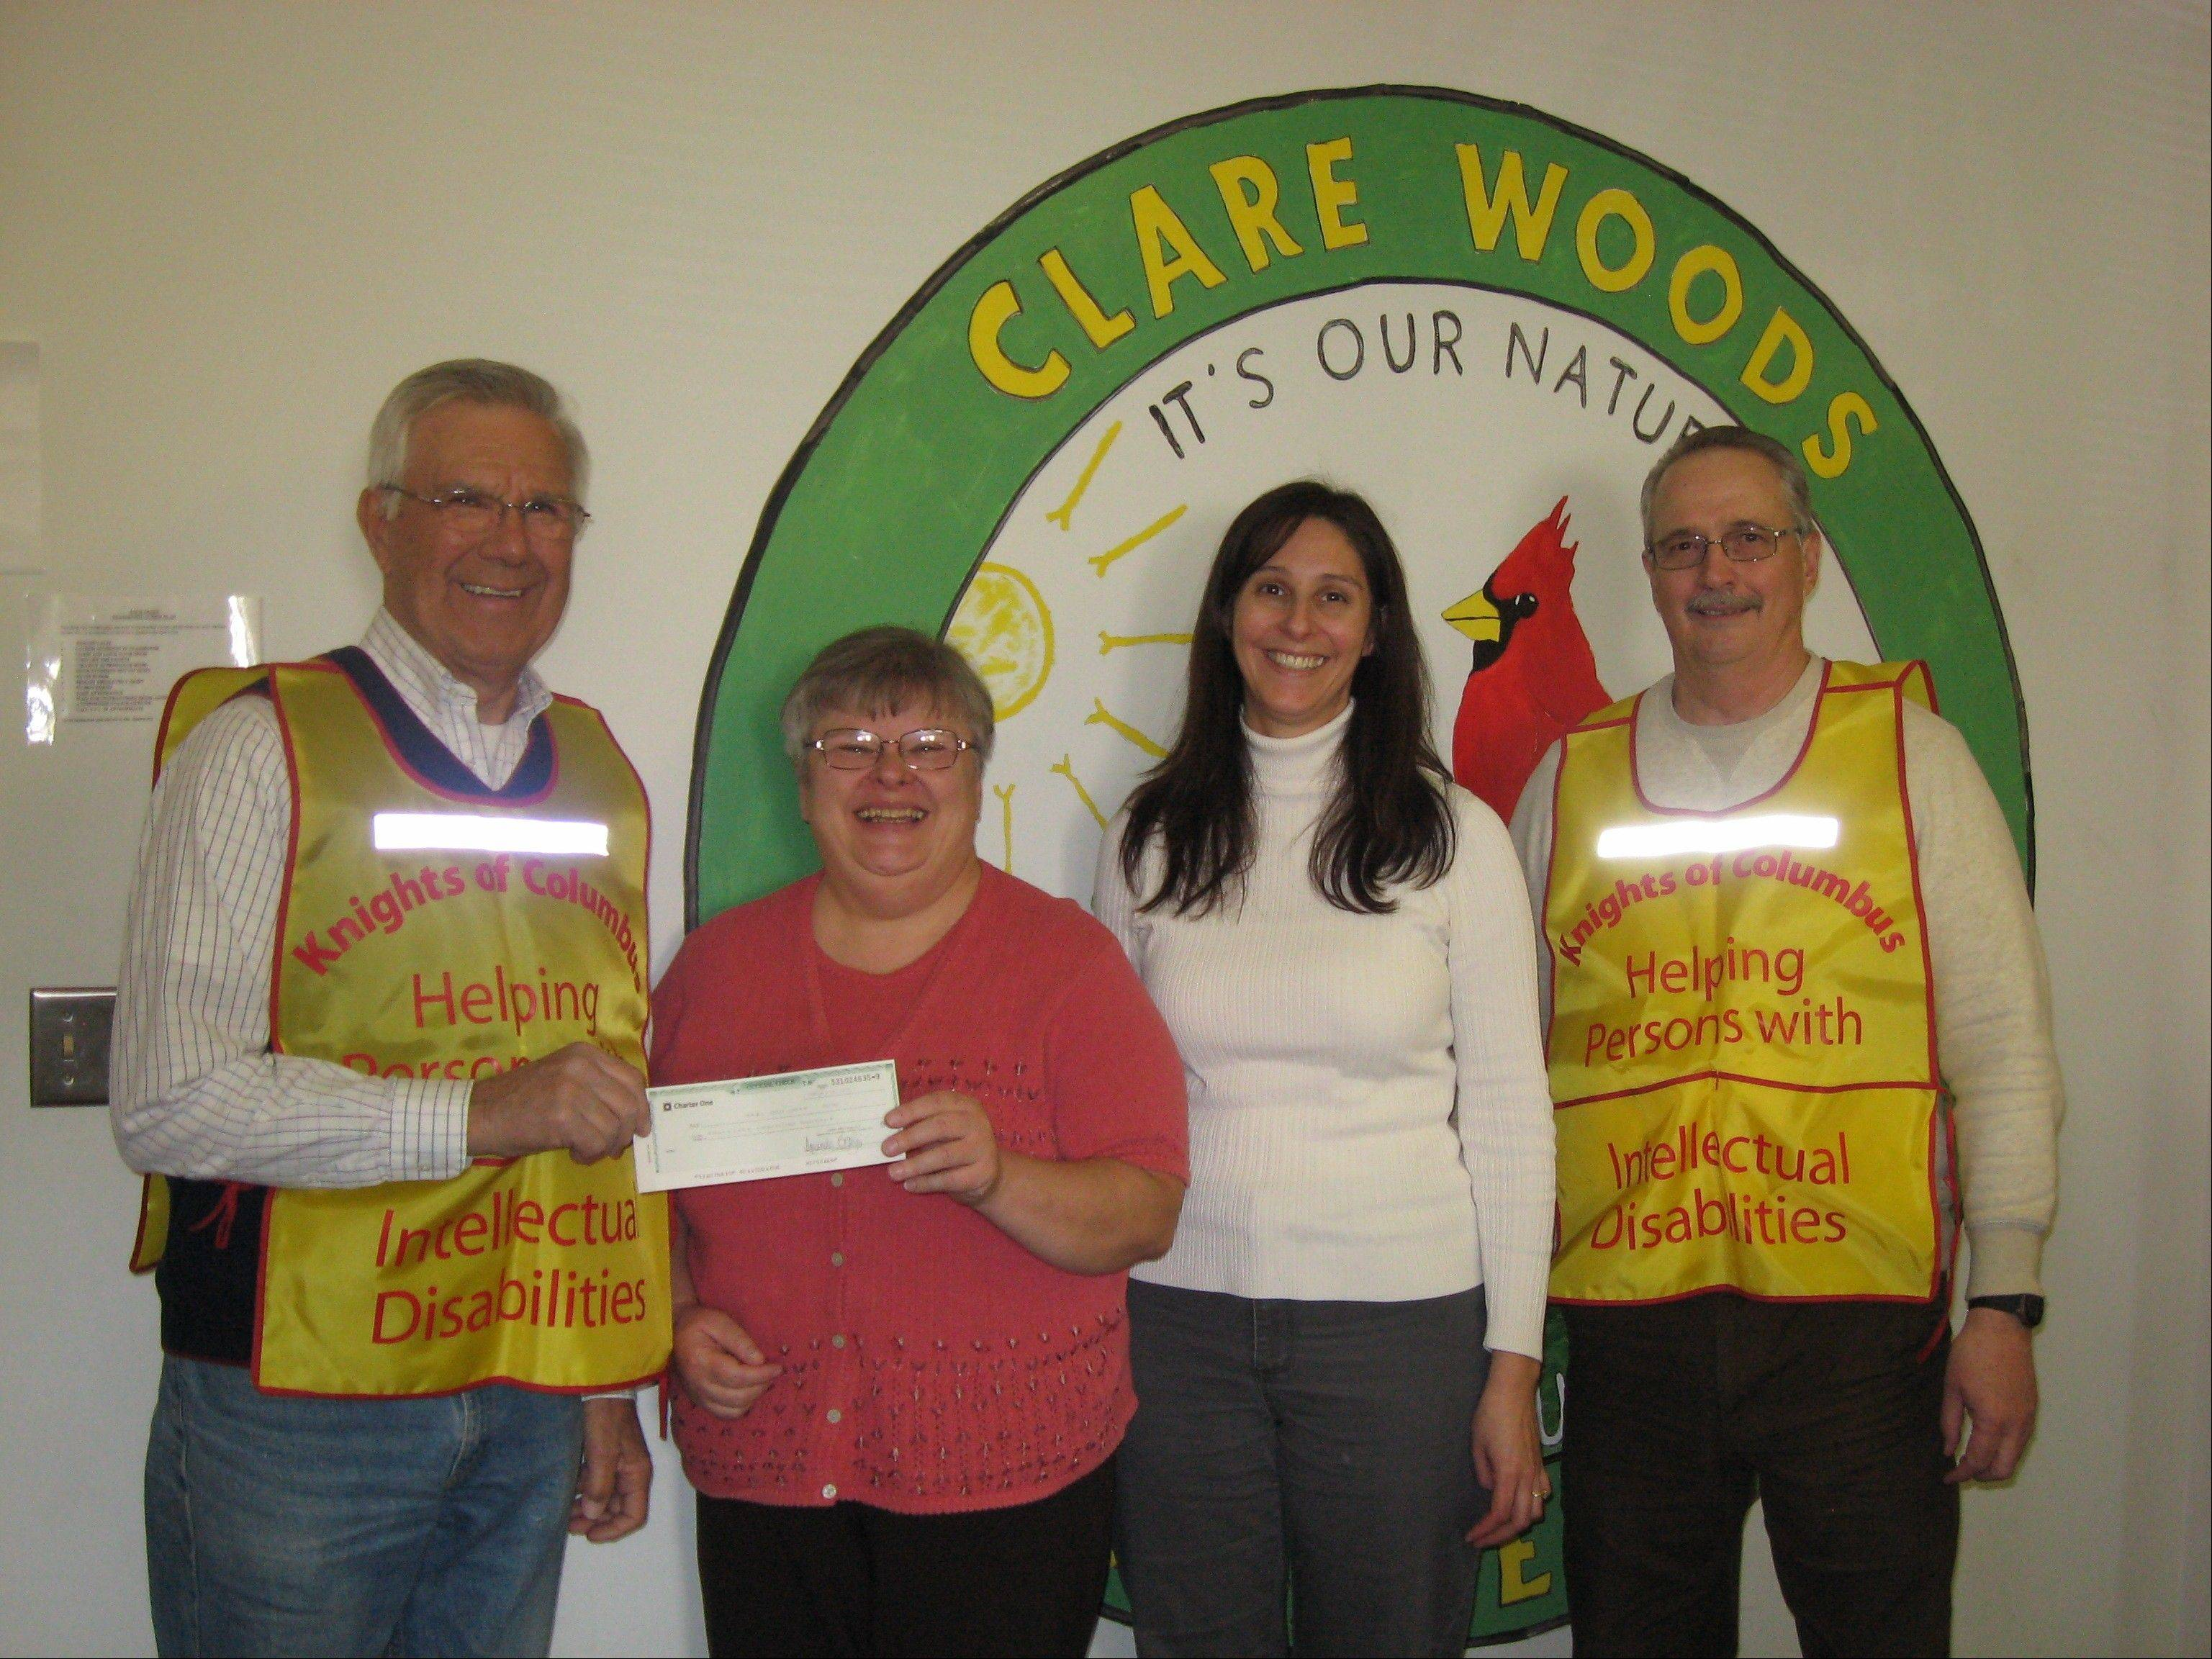 A local chapter of the Knights of Columbus recently donated $1,000 to the Bartlett Learning Center that will be put toward purchasing a new vehicle that can transport residents in a group home. Pictured, from left to right, are John Warwick, Knights of Columbus recording secretary; Linda Frye-Danner, Bartlett Learning Center development director; Elaina McCalmont, Bartlett Learning Center development administration assistant; and Skip Cordell, Knights of Columbus Council Warden.